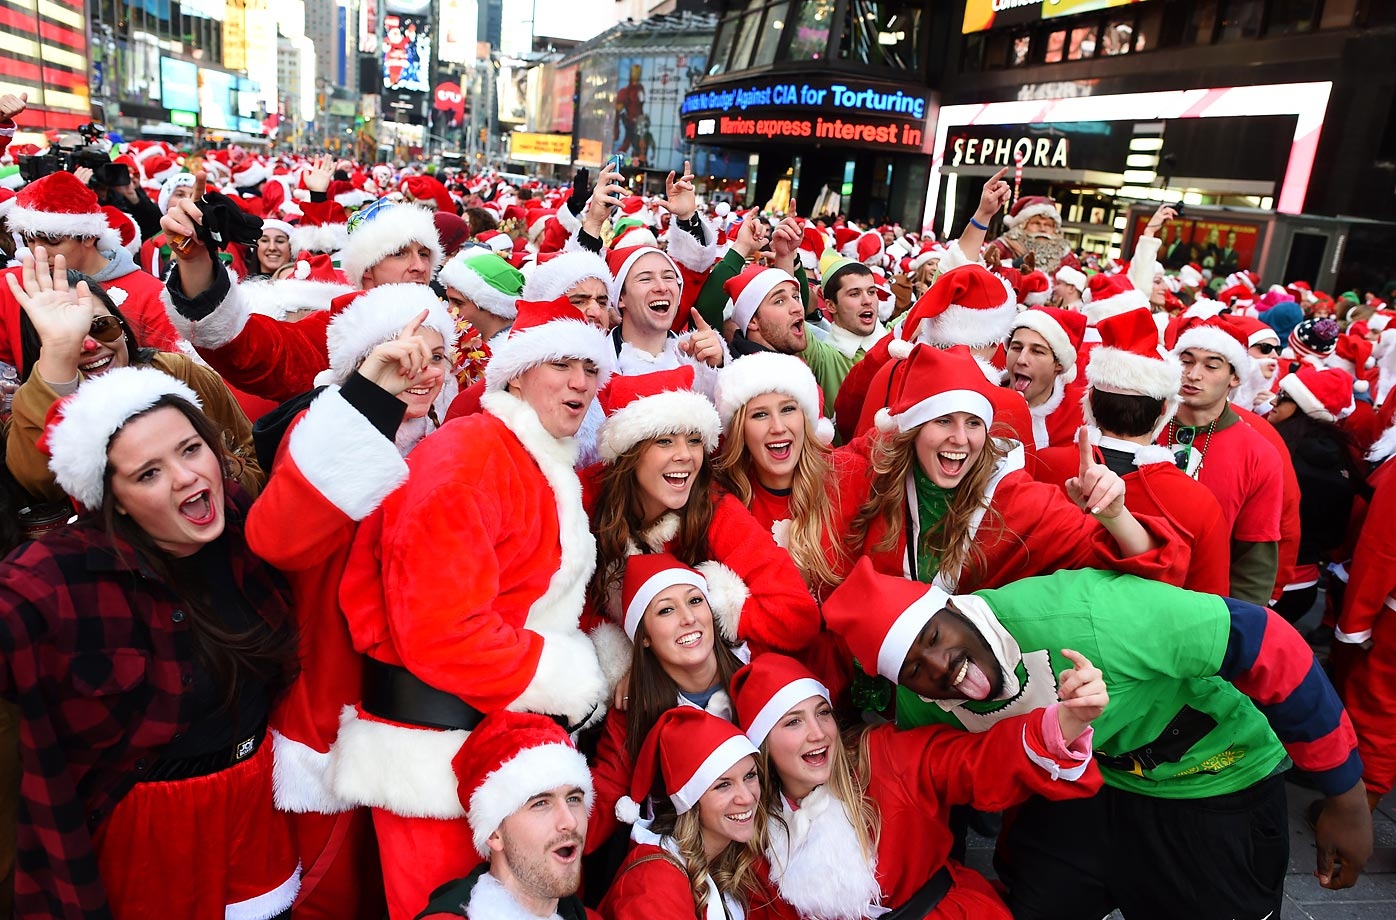 Santa Claus and Mrs. Claus pose in Times Square as they gather for the annual Santacon festivities.